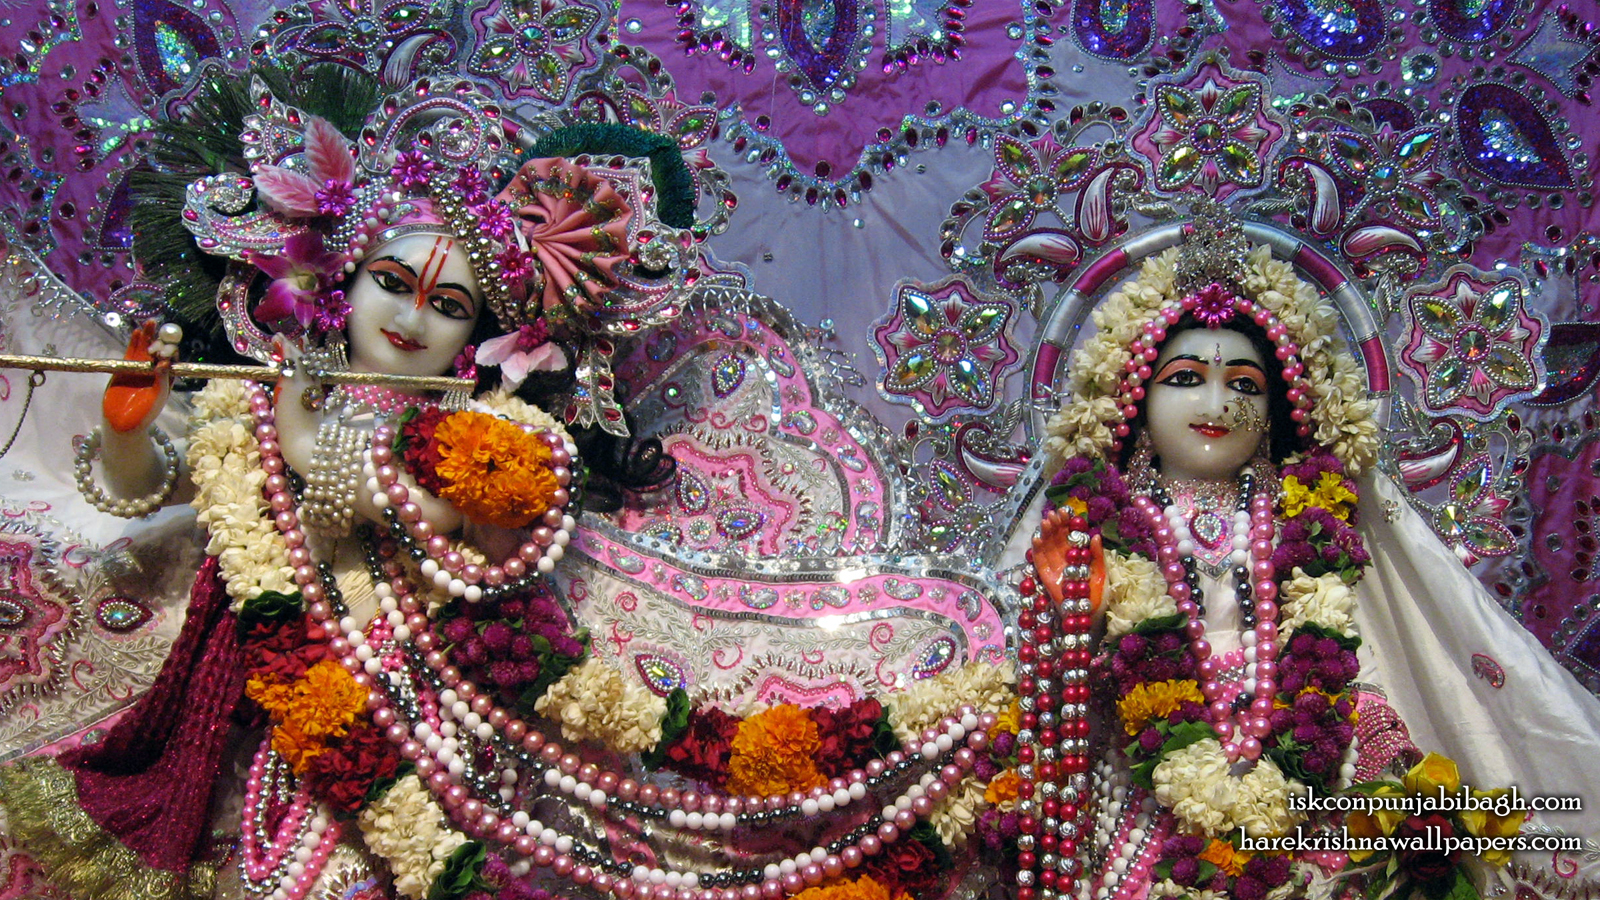 Sri Sri Radha Radhikaraman Close up Wallpaper (003) Size 1600x900 Download